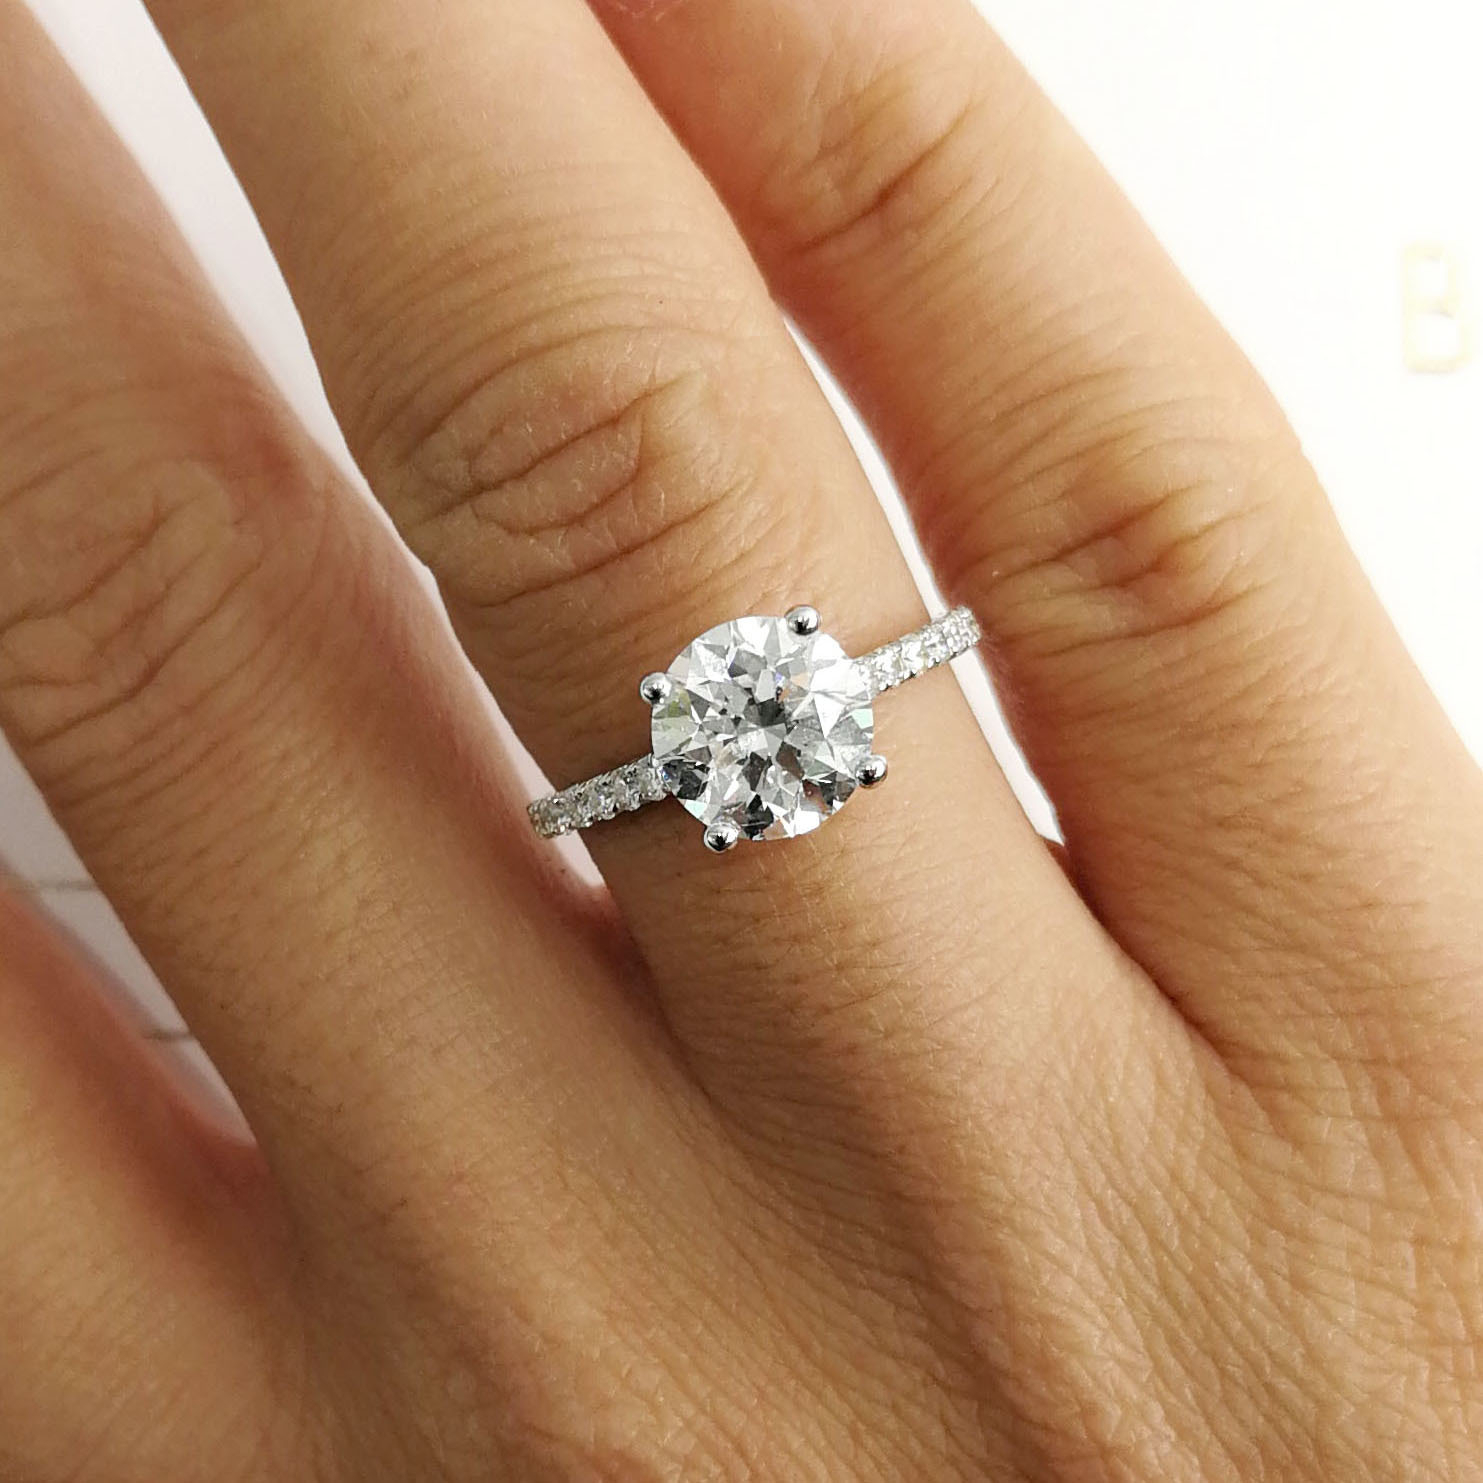 Details About 2 Carat Round Shape D – Vs2 Side Stone Diamond Gia Engagement  Ring Sizeable With Regard To Round Brilliant Engagement Rings With Pear Shaped Side Stones (View 24 of 25)